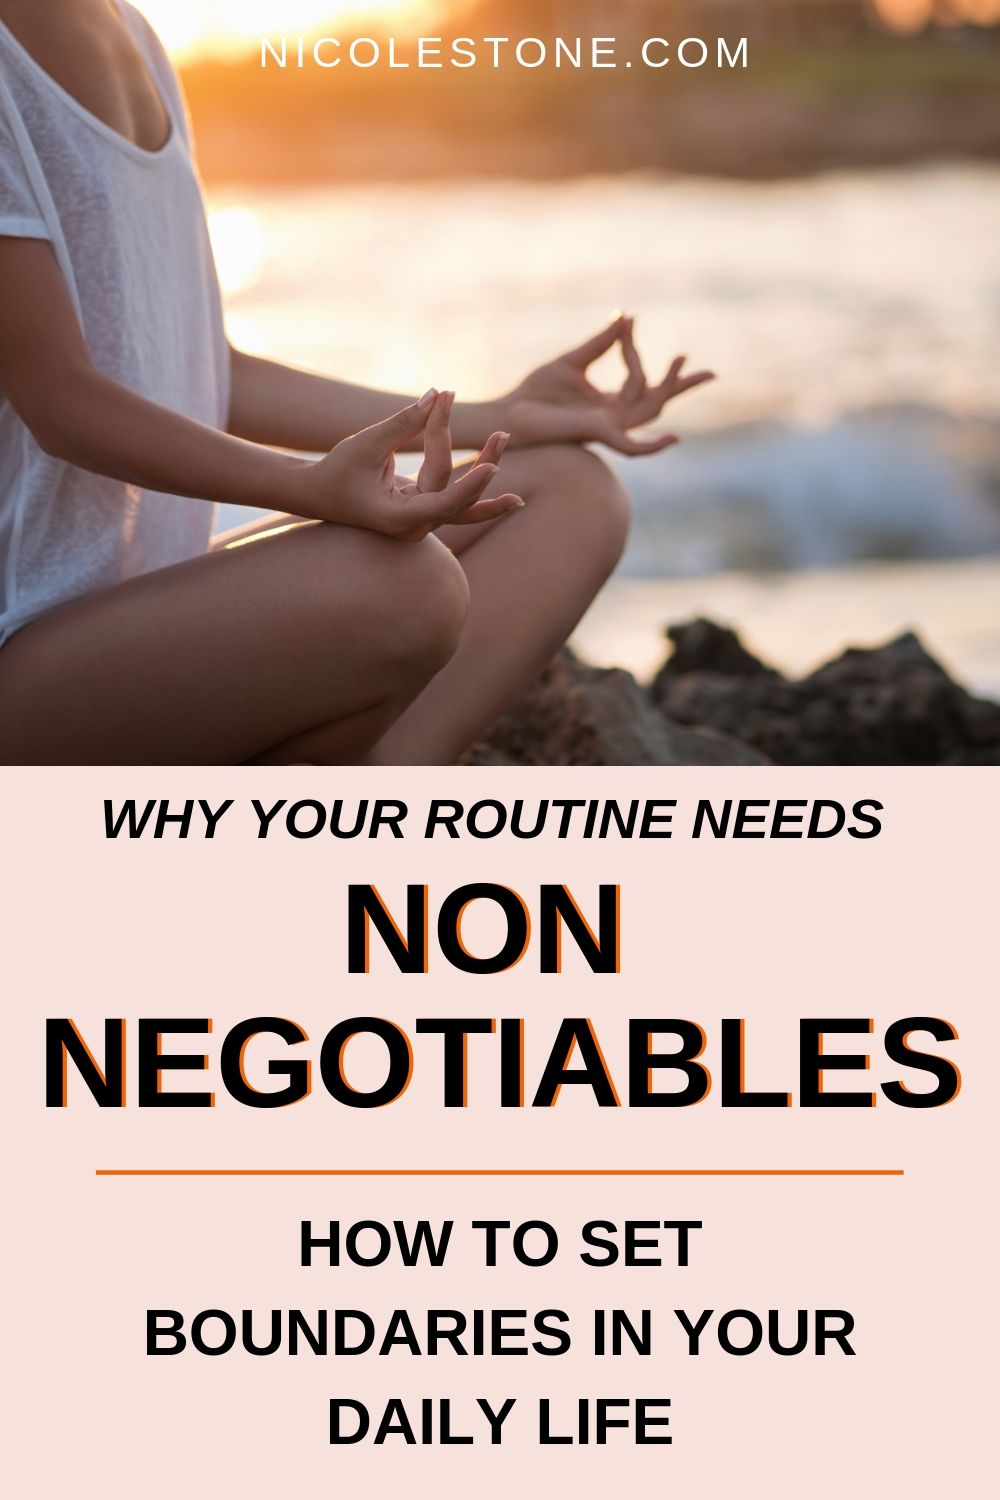 Improve your life and productivity by setting your non-negotiables. A complete guide to setting daily boundaries to help you get more done. #routine #personaldevelopment #personalgrowth